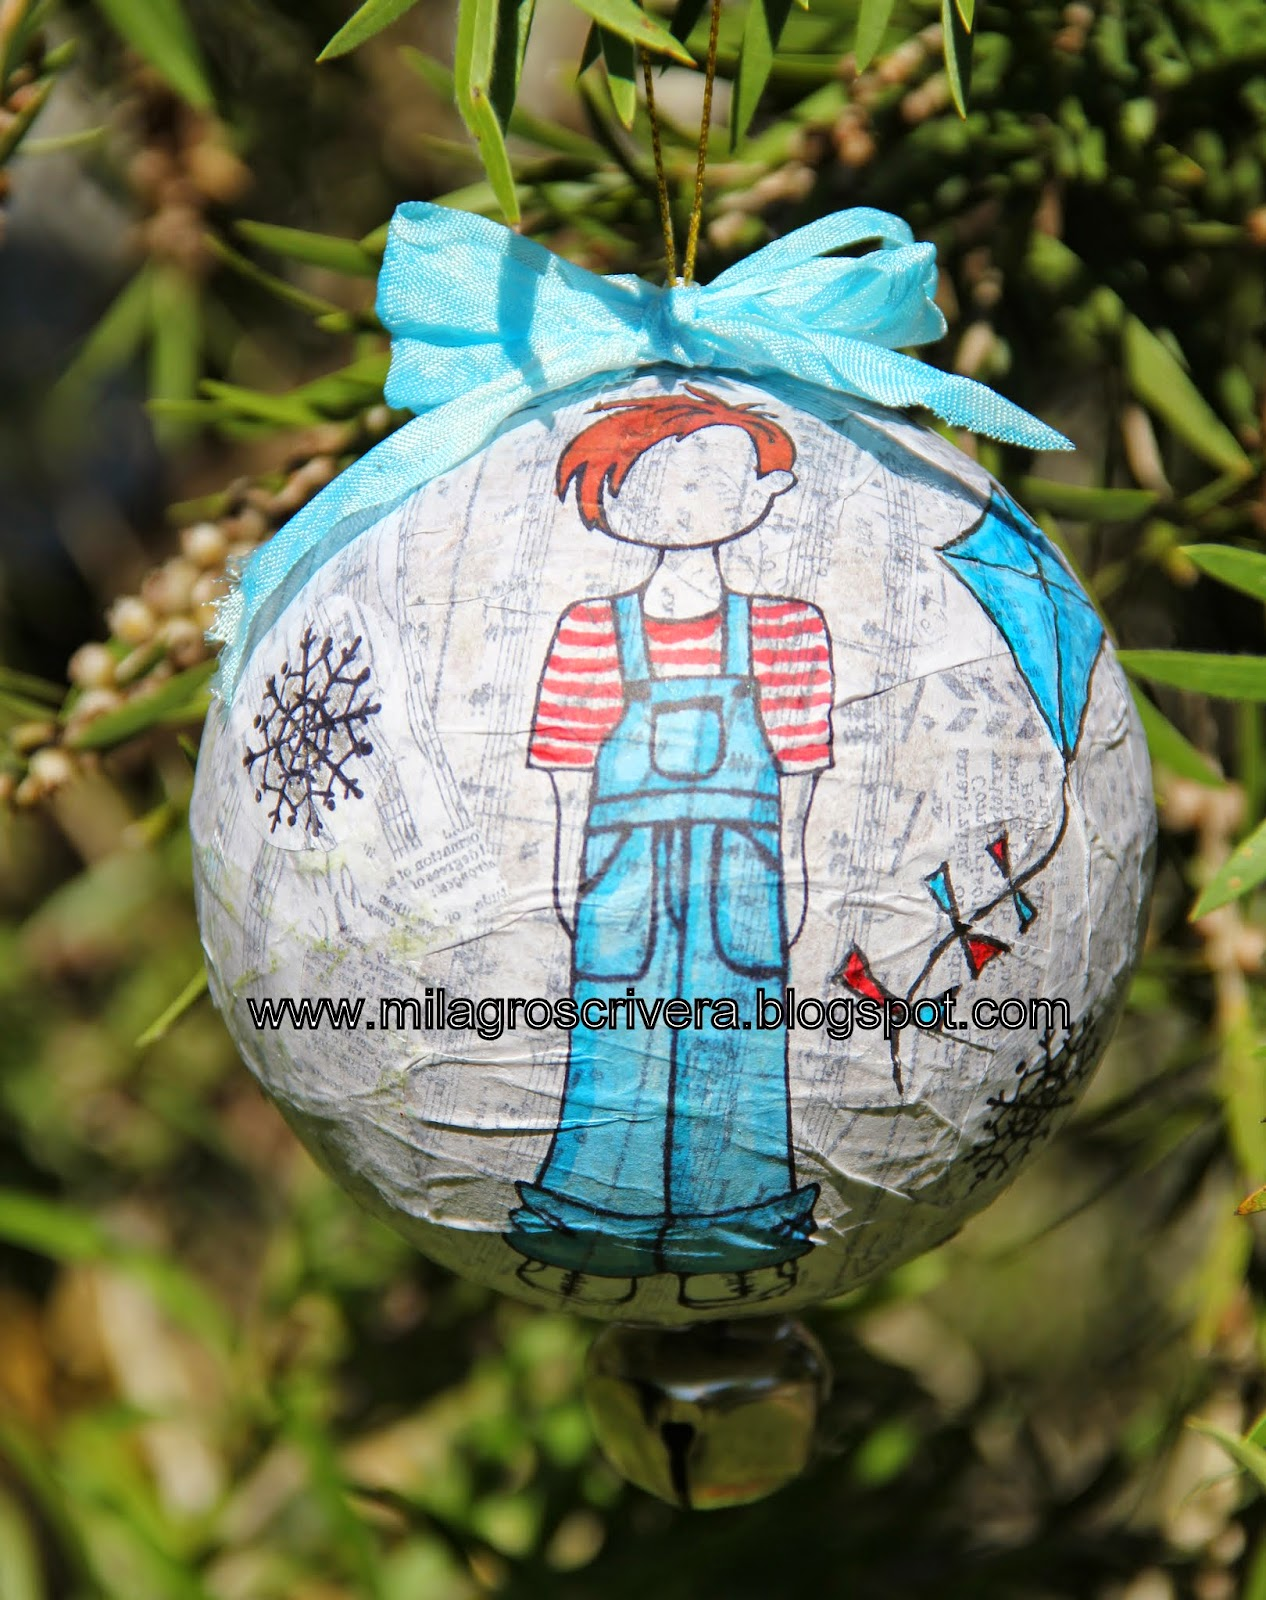 http://milagroscrivera.blogspot.com/2014/12/julie-nutting-toby-christmas-ornament.html